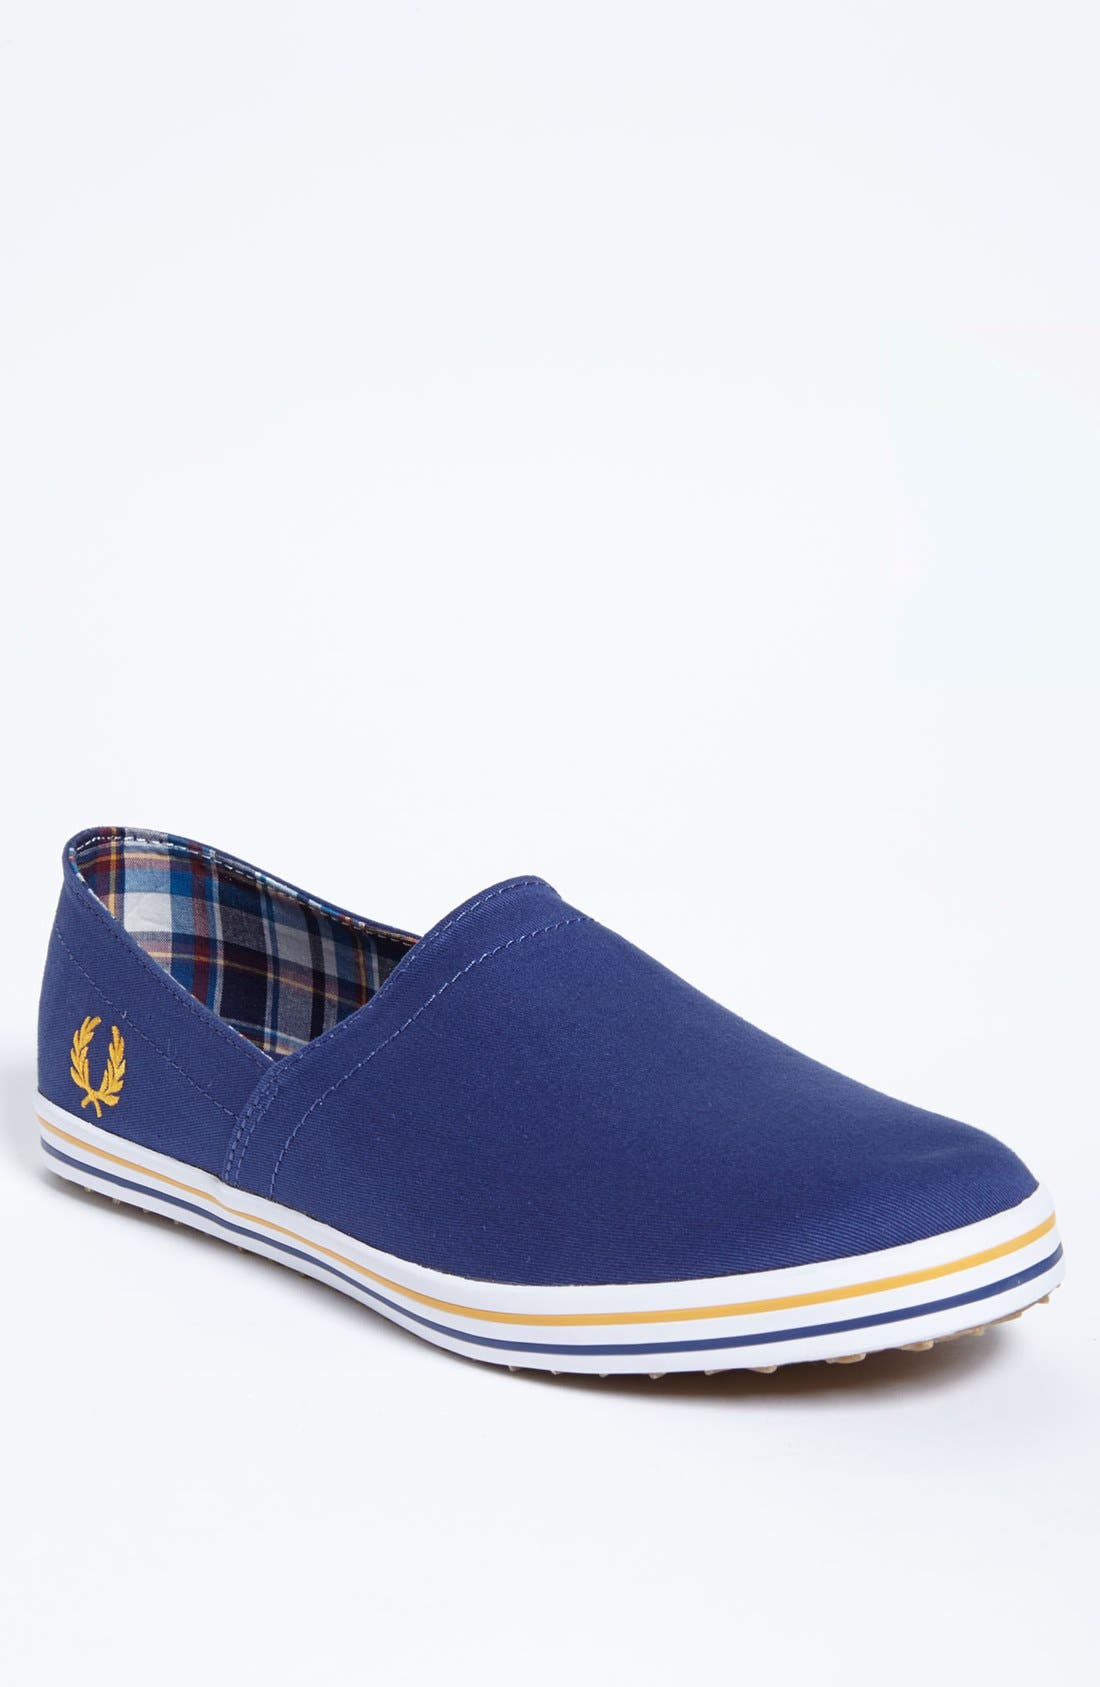 Main Image - Fred Perry 'Kingston Stampdown' Slip-On